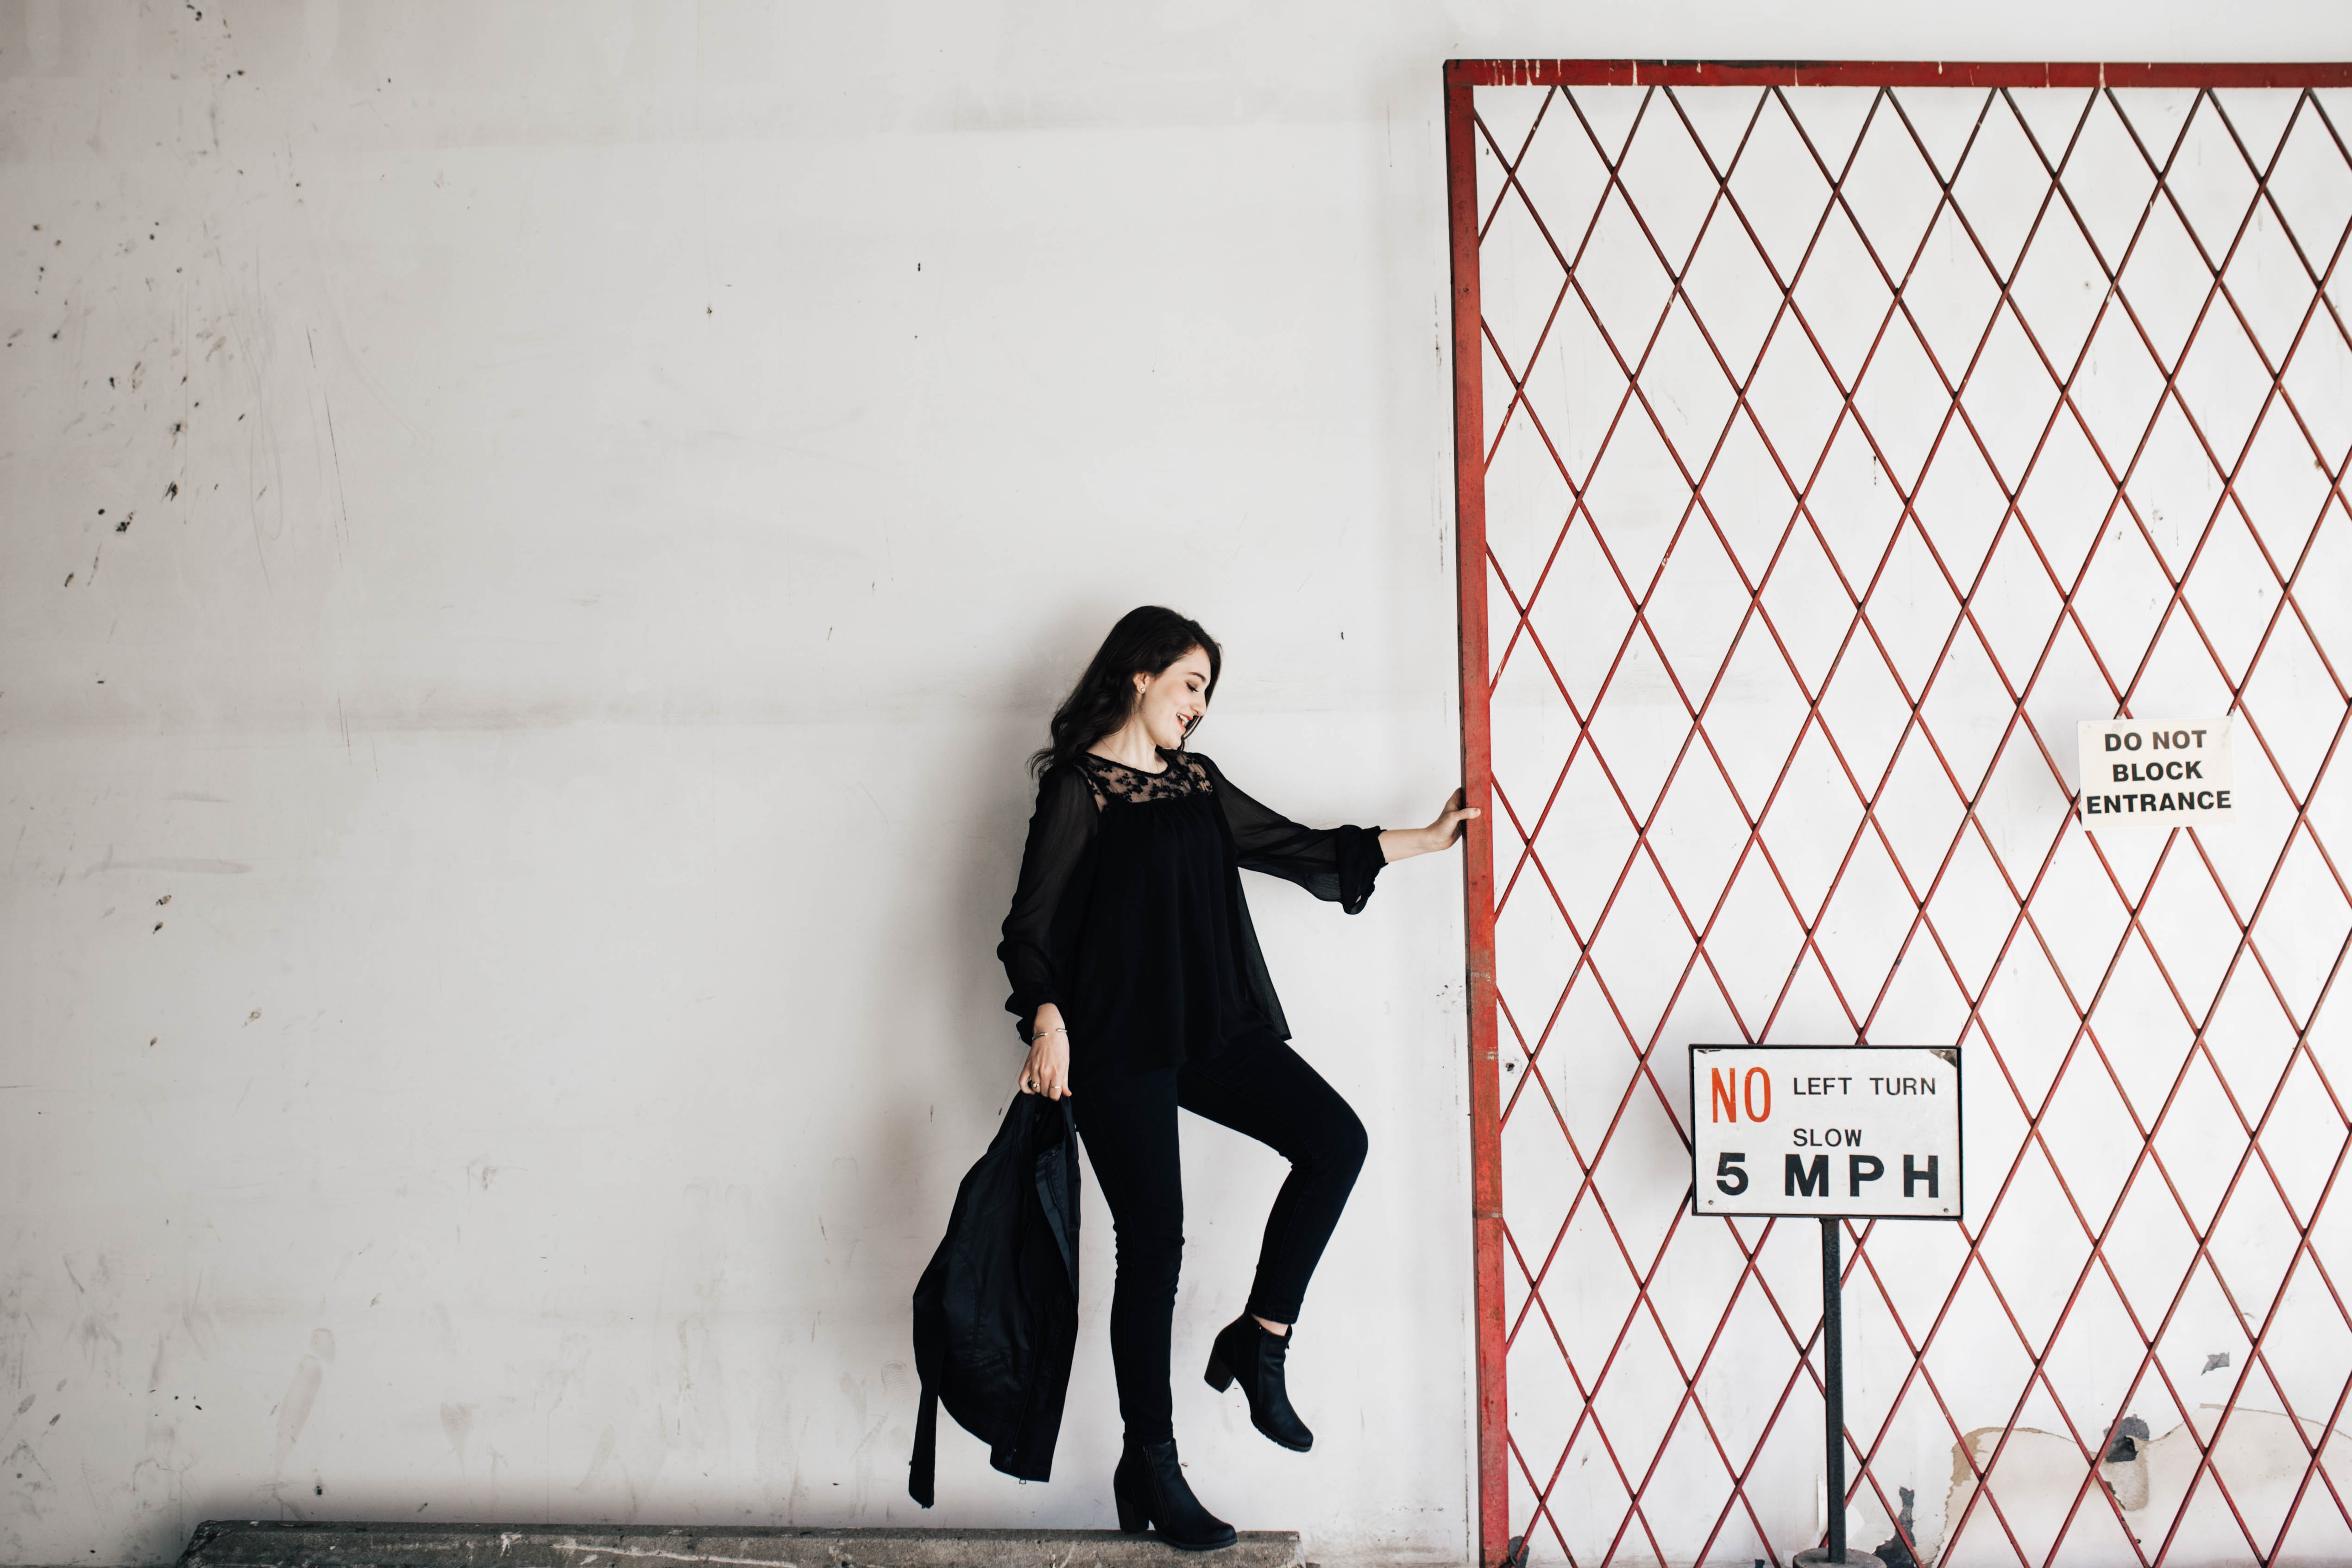 A woman dressed in black is holding onto the entrance gate next to the signs.